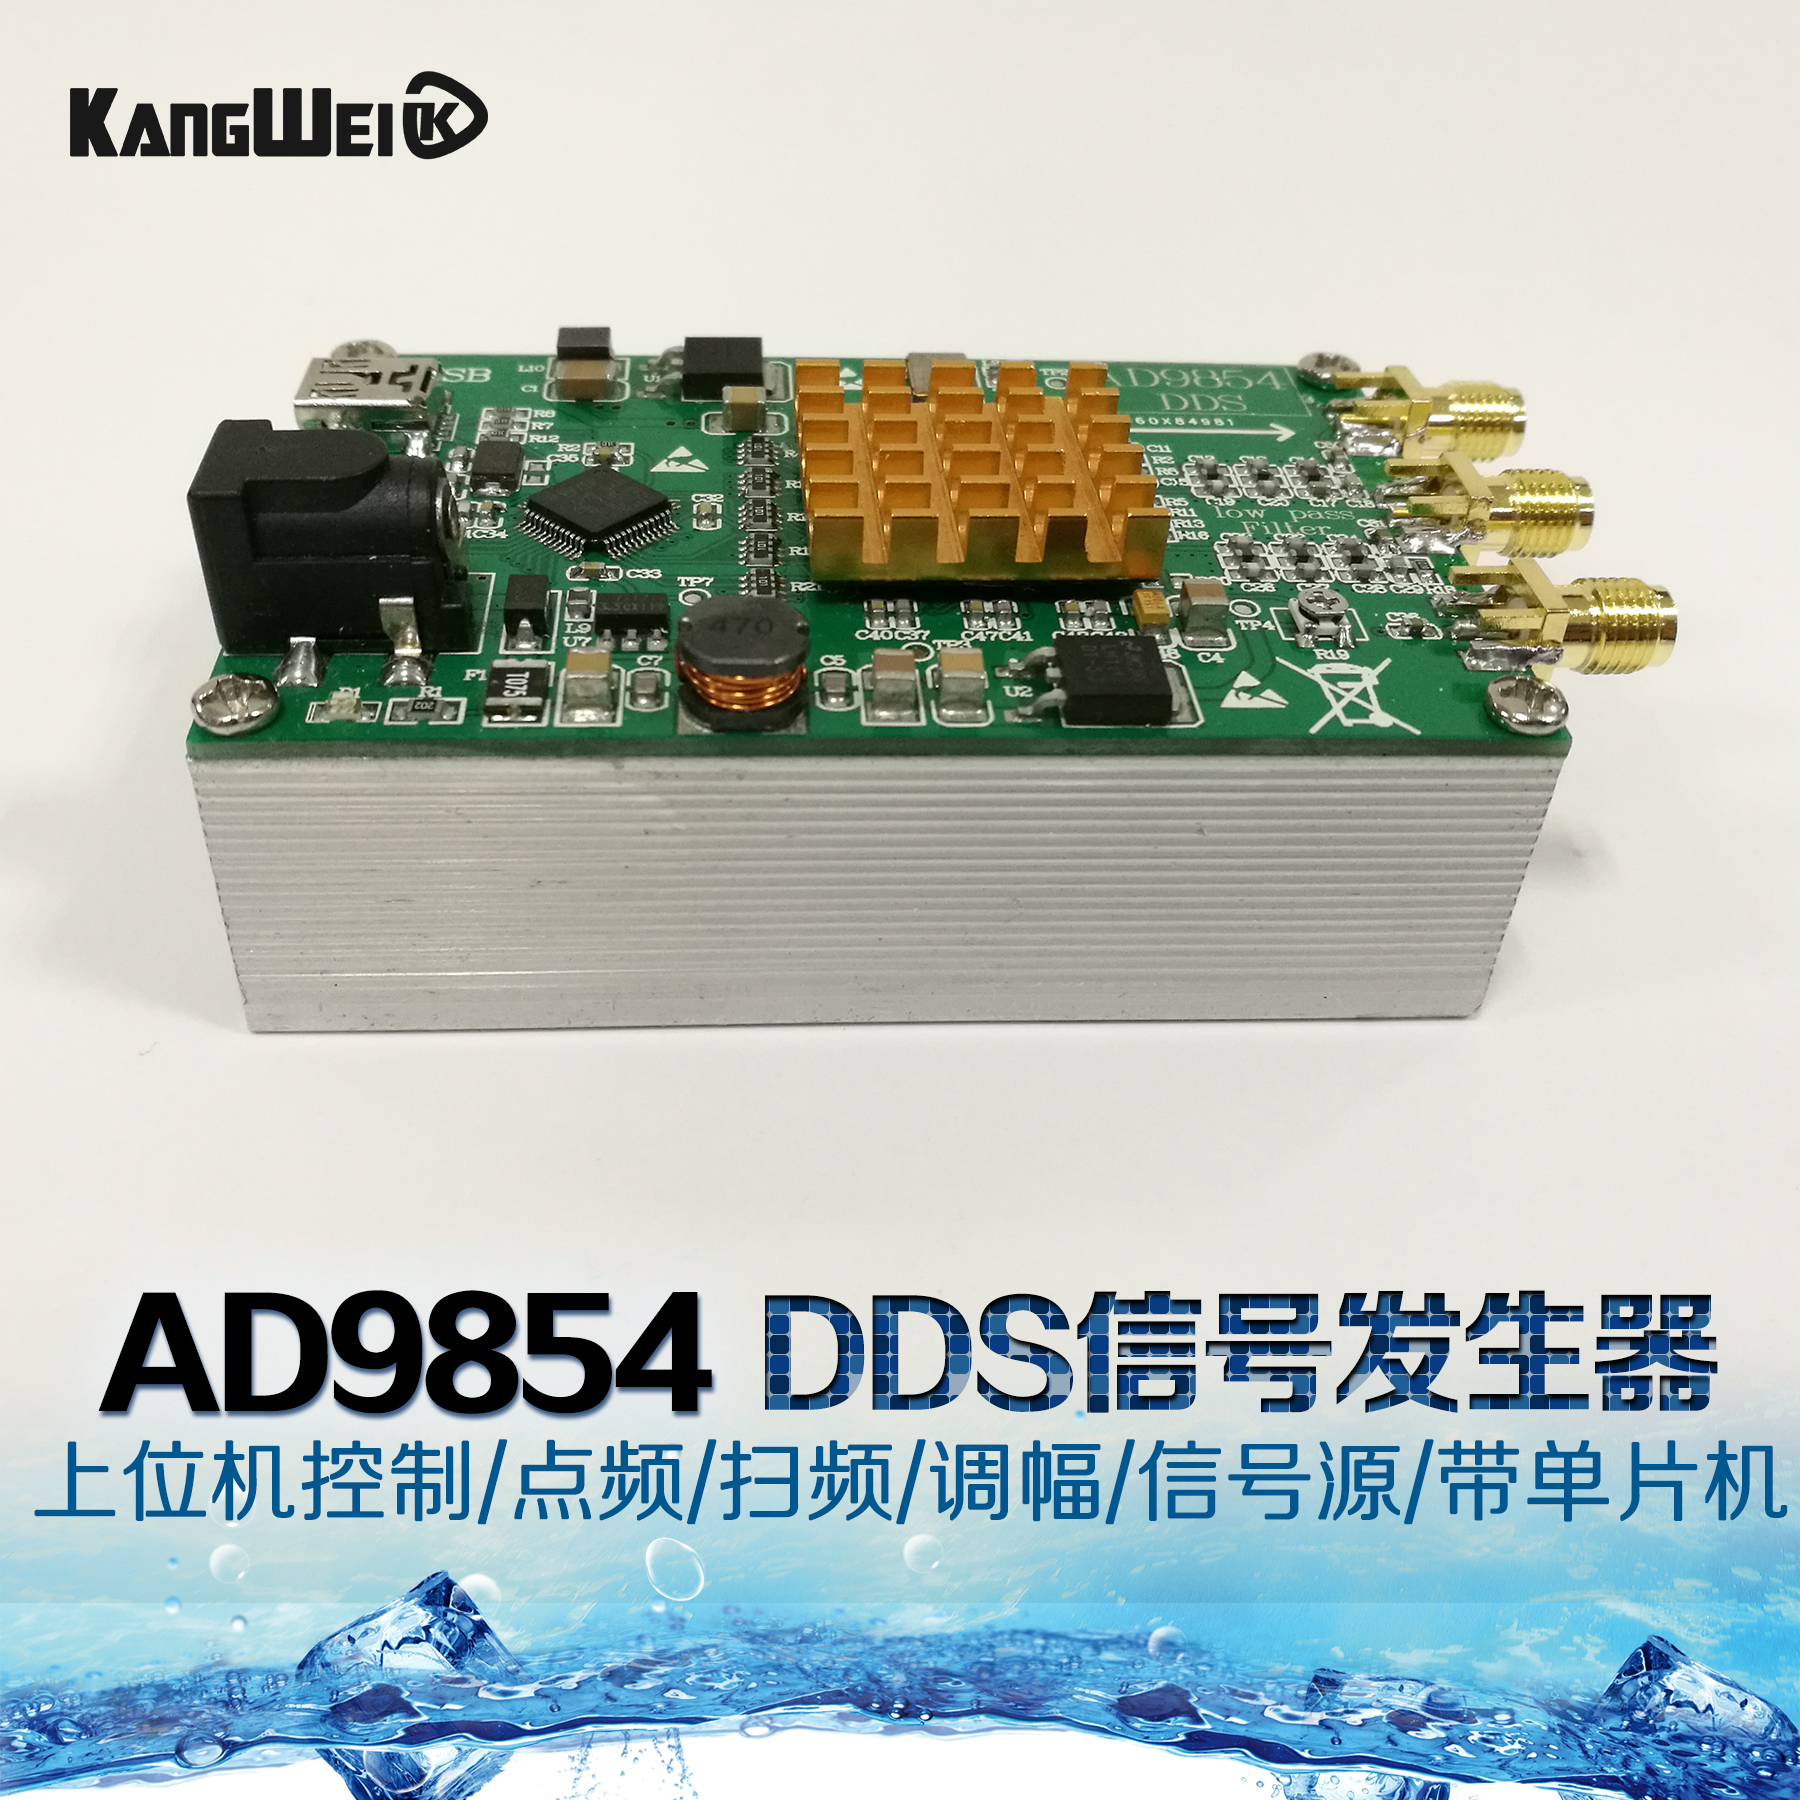 AD9854 DDS signal generator module upper computer dot frequency sweep frequency modulation signal source. 7 units ipm frequency conversion velocity modulation module mubw25 12a7 25a1200v